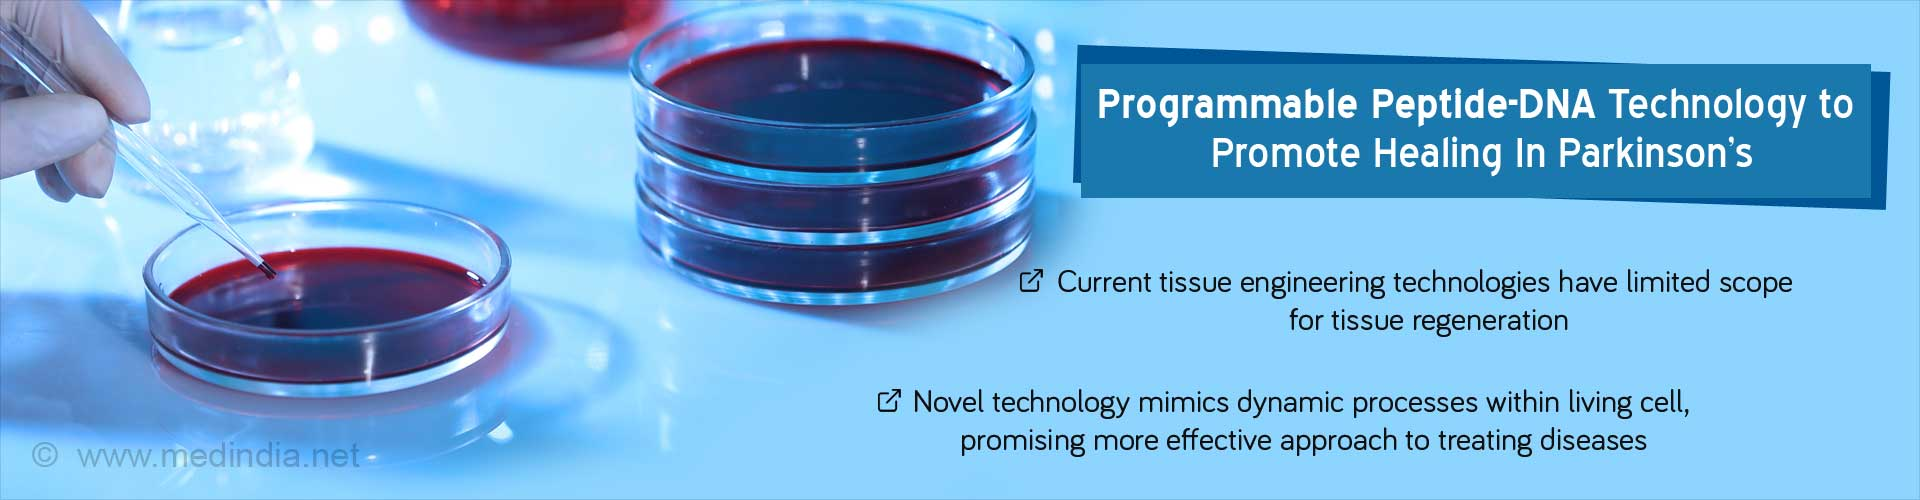 Programmable Peptide DNA Hybrids � Potential Game Changer In Tissue Engineering Technology